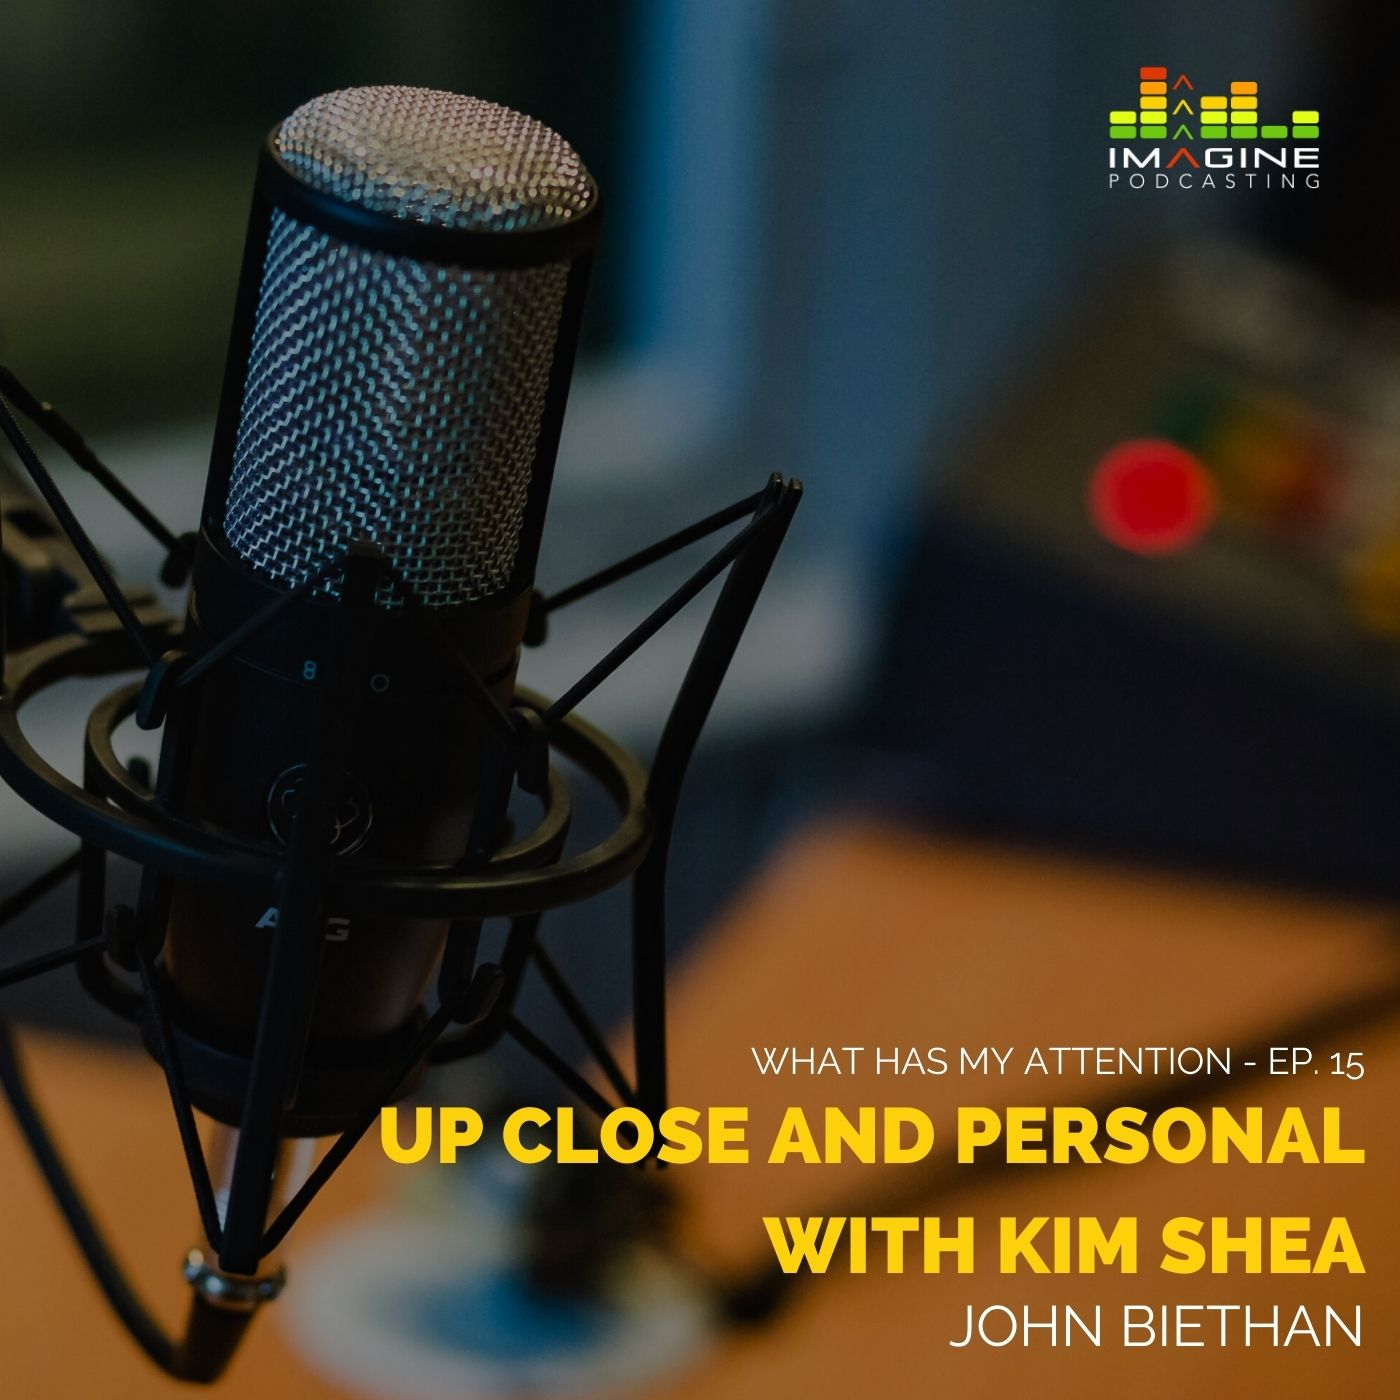 Ep. 15 Up Close and Personal with Kim Shea